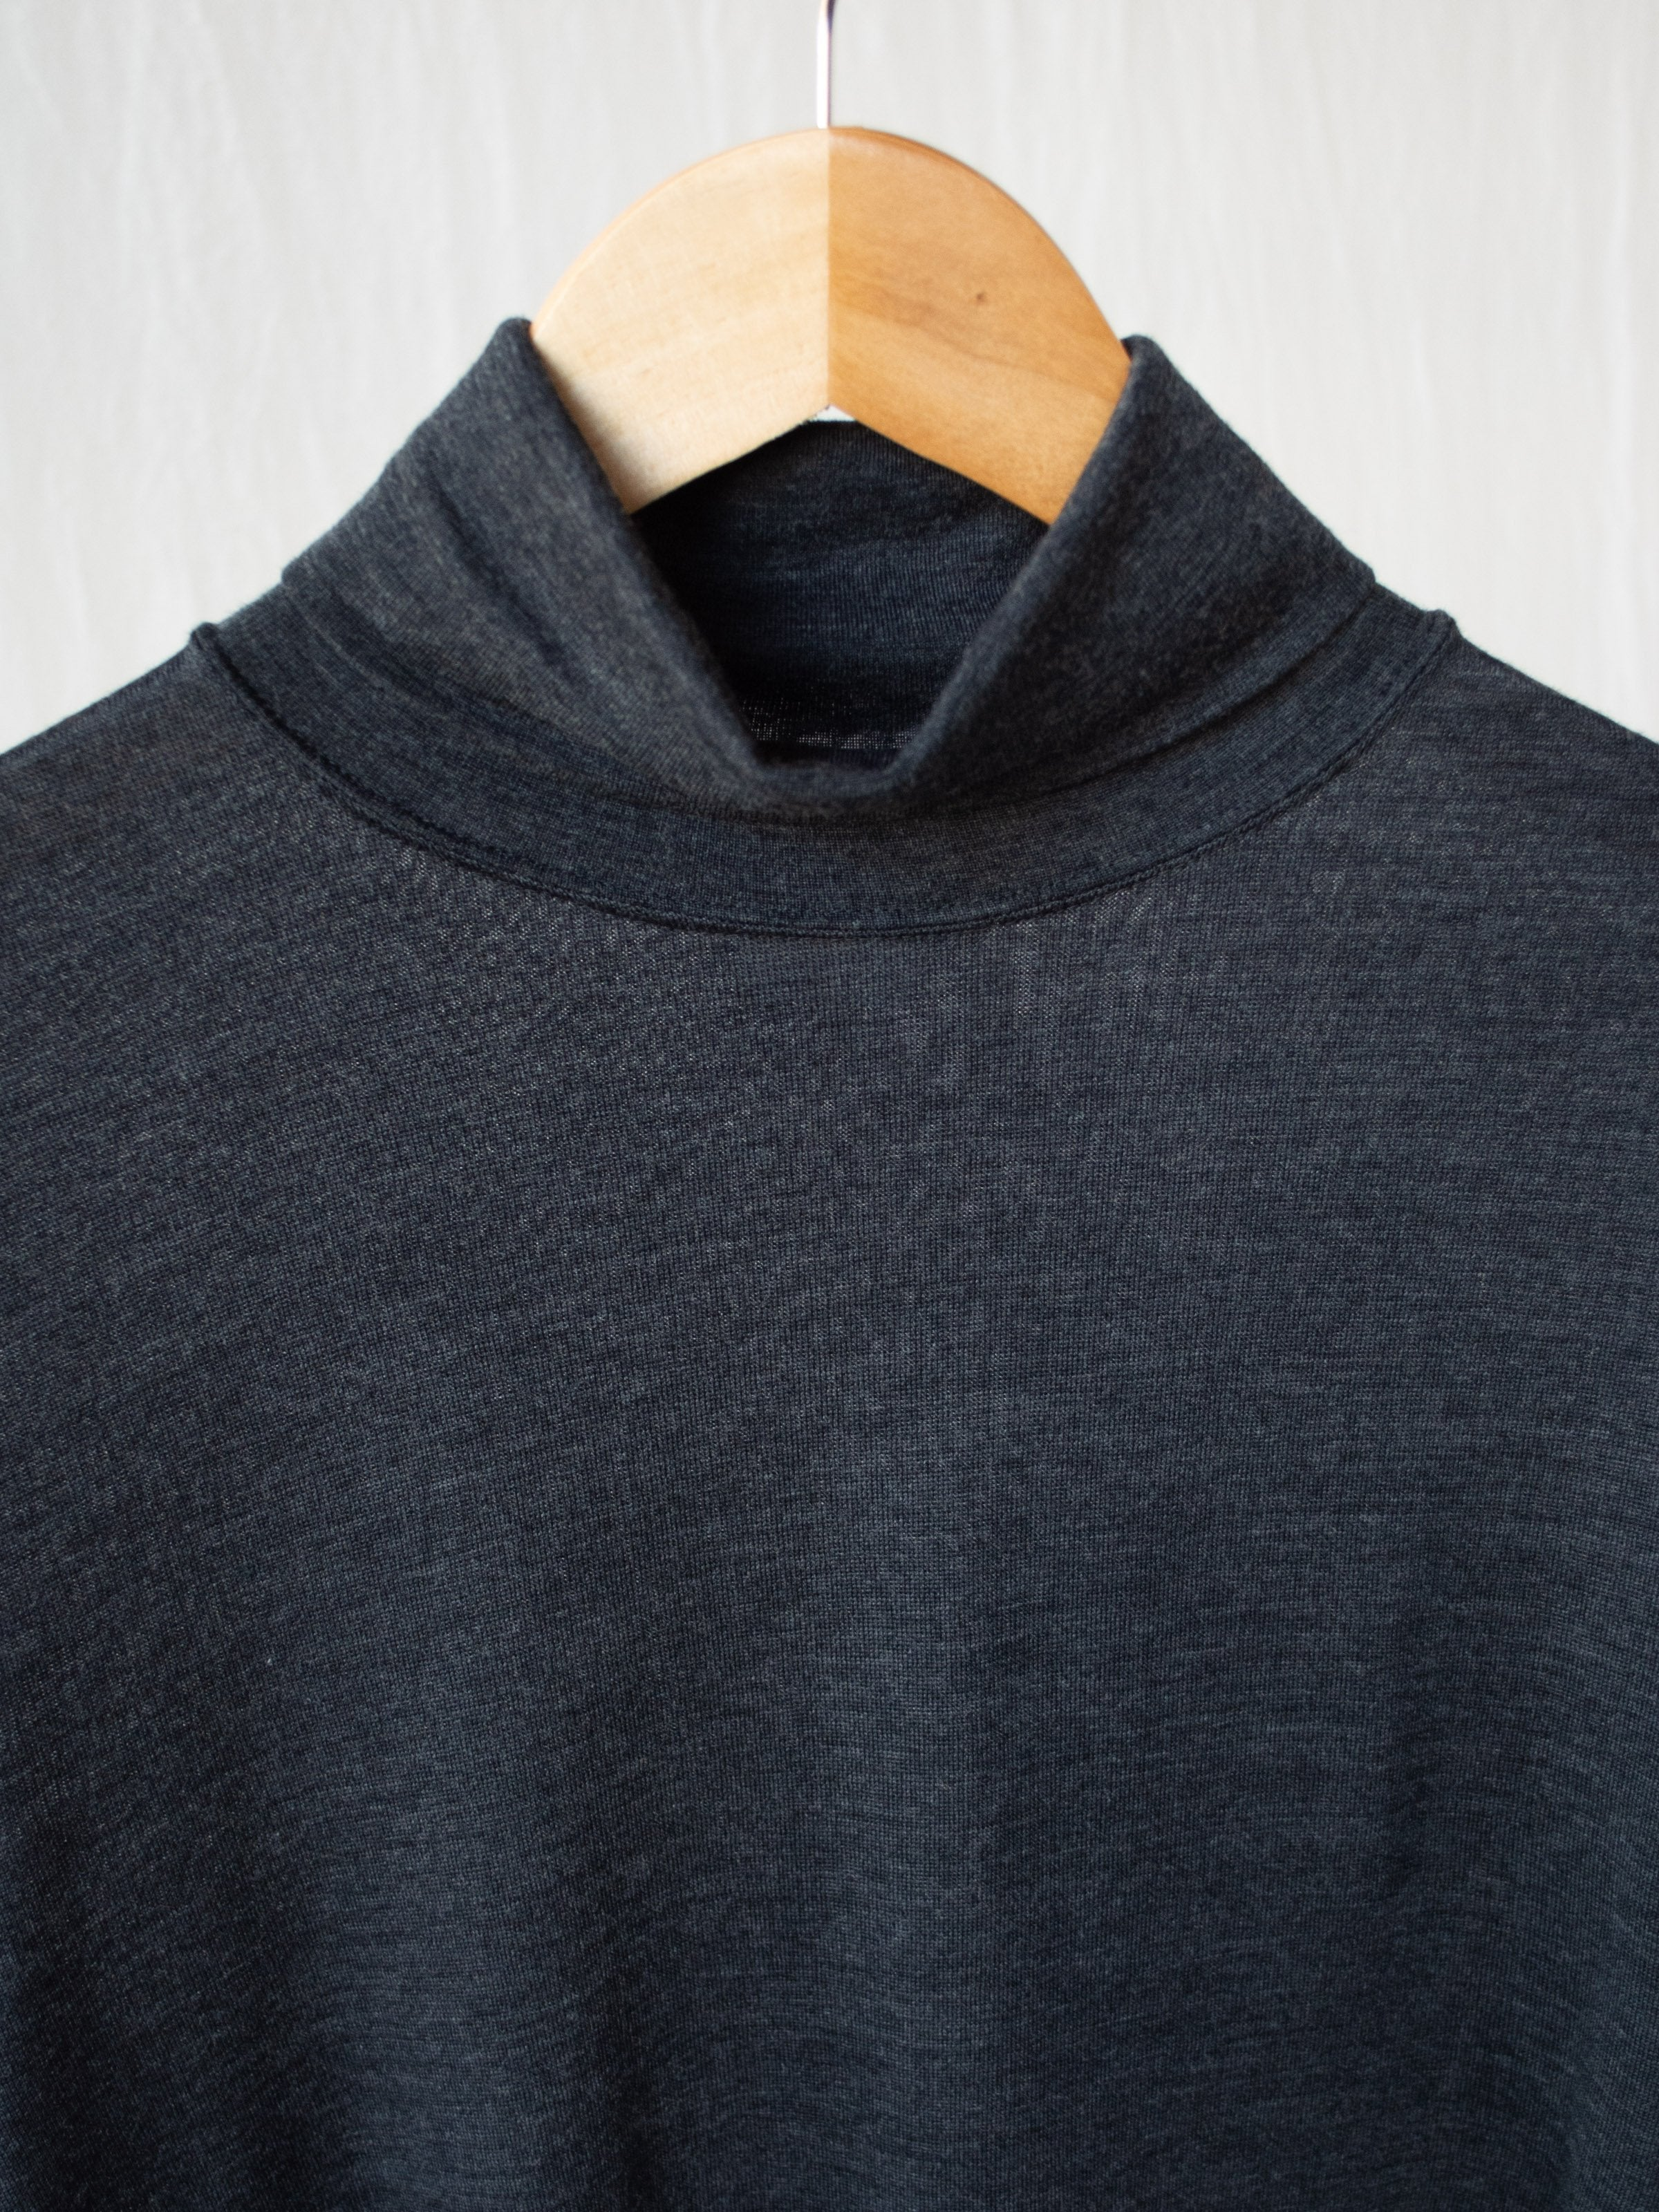 Namu Shop - Phlannel Wool Turtleneck T-Shirt - Gray